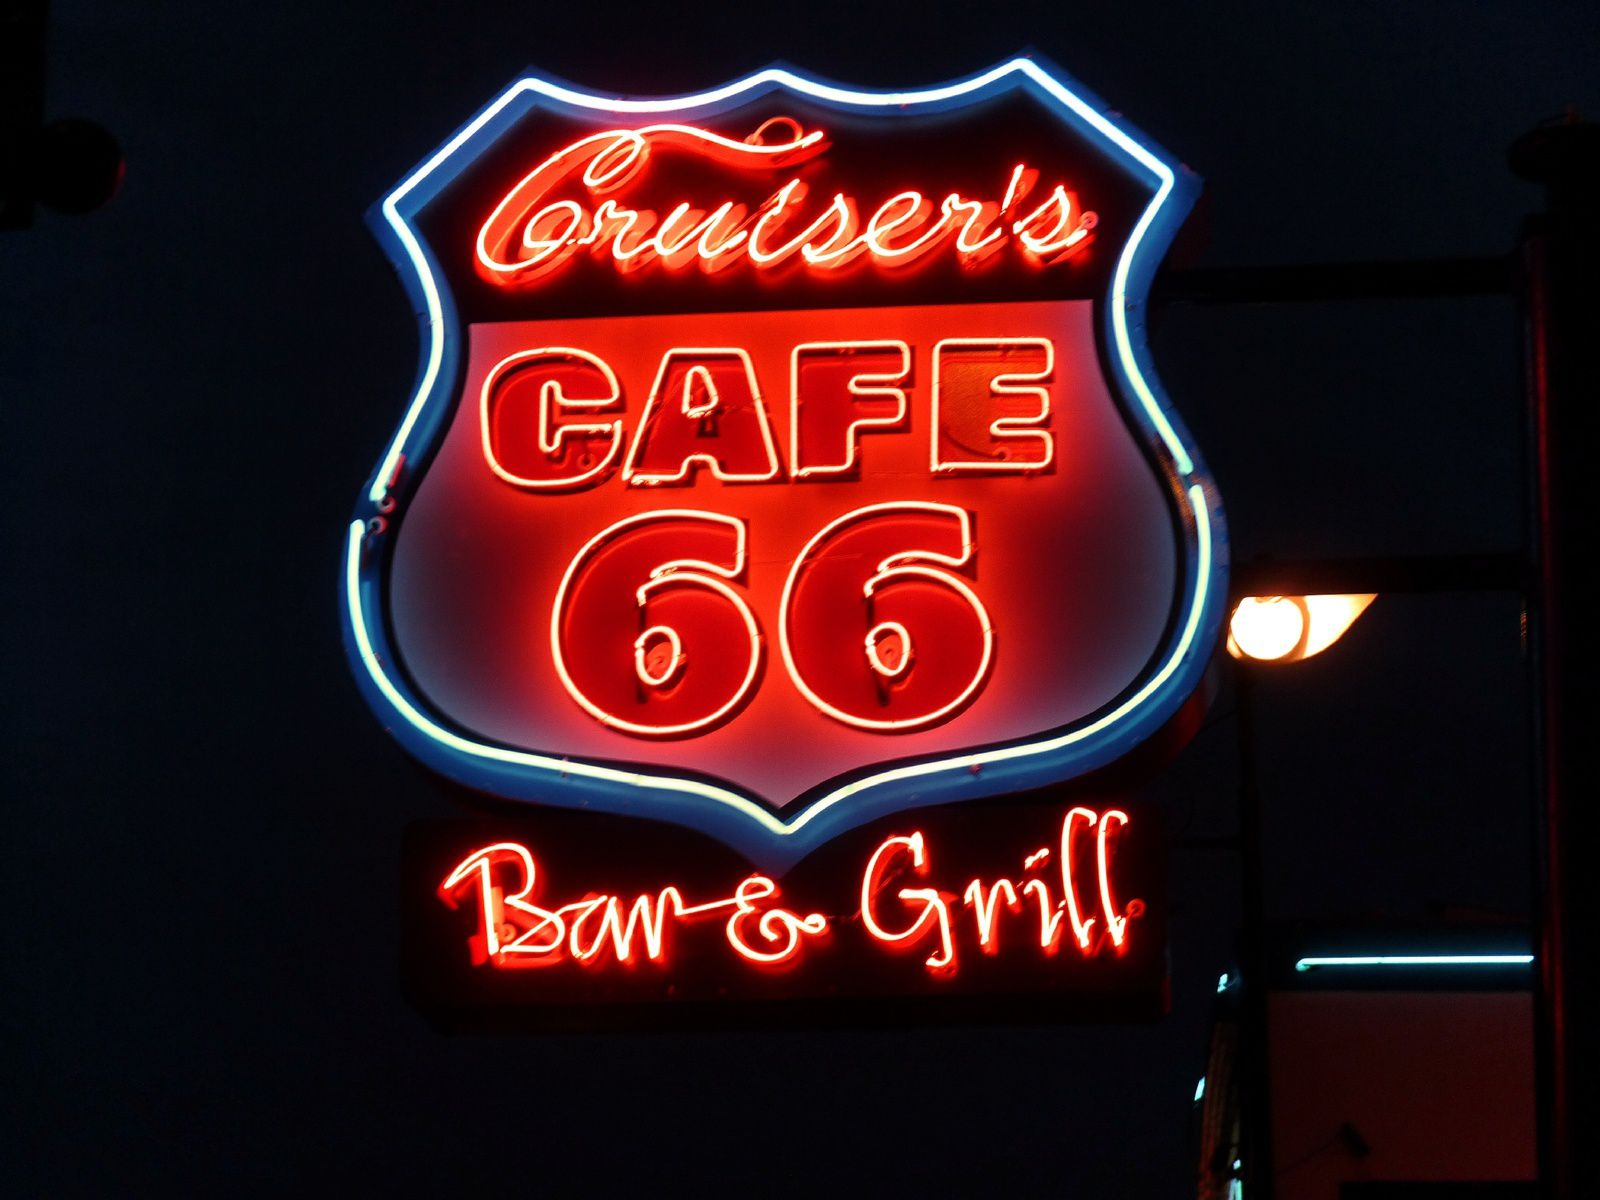 Le Cruiser's Cafe , Williams AZ